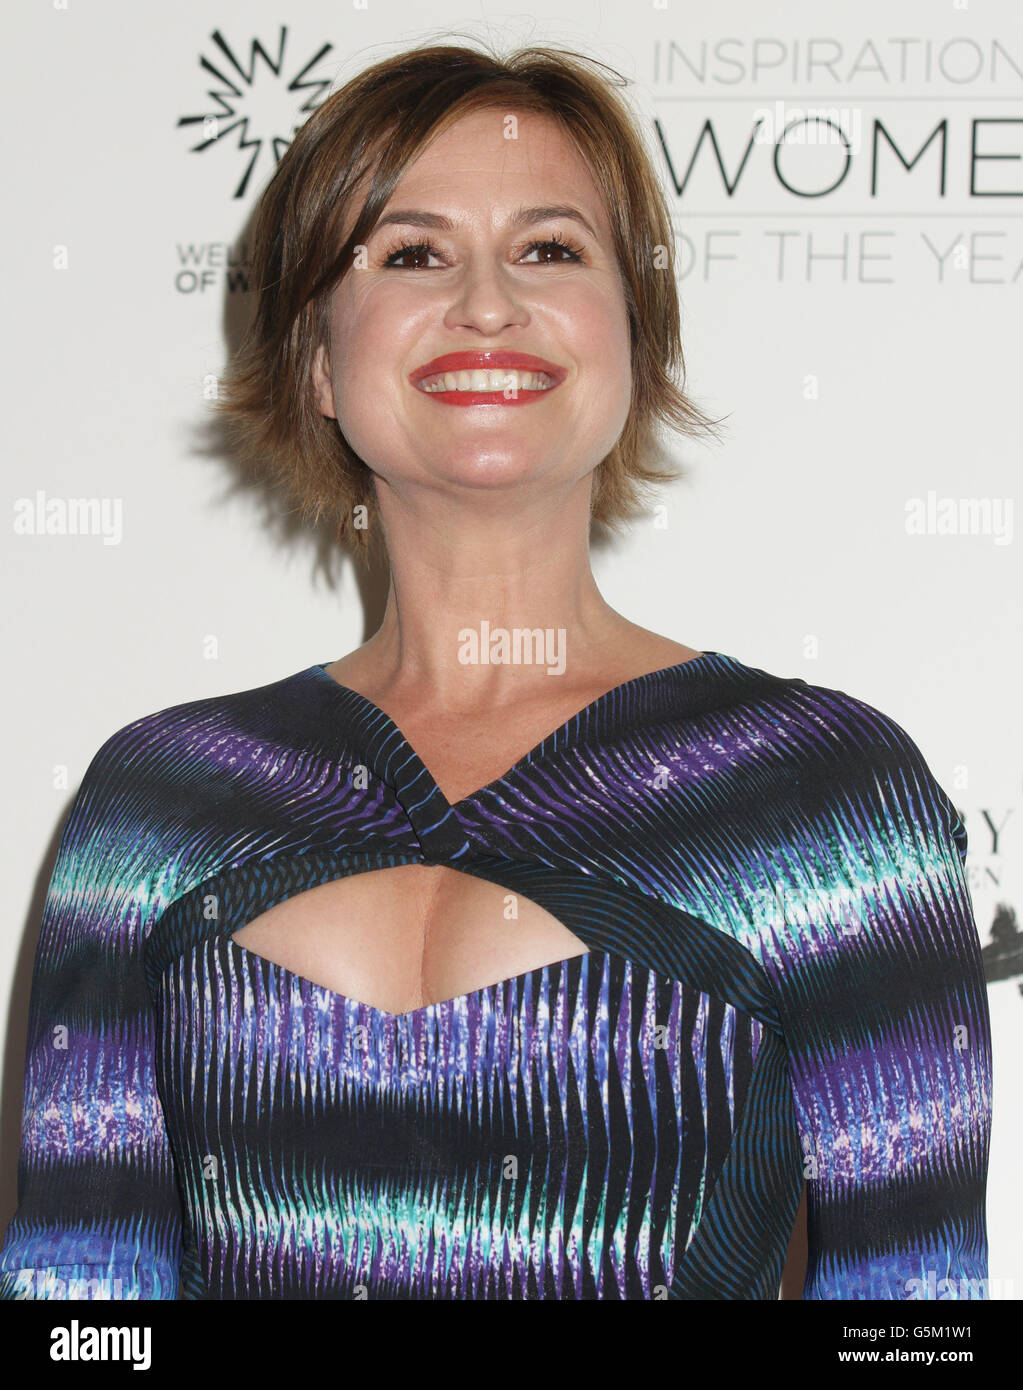 Daily Mail Inspirational Woman of the Year Awards - London - Stock Image